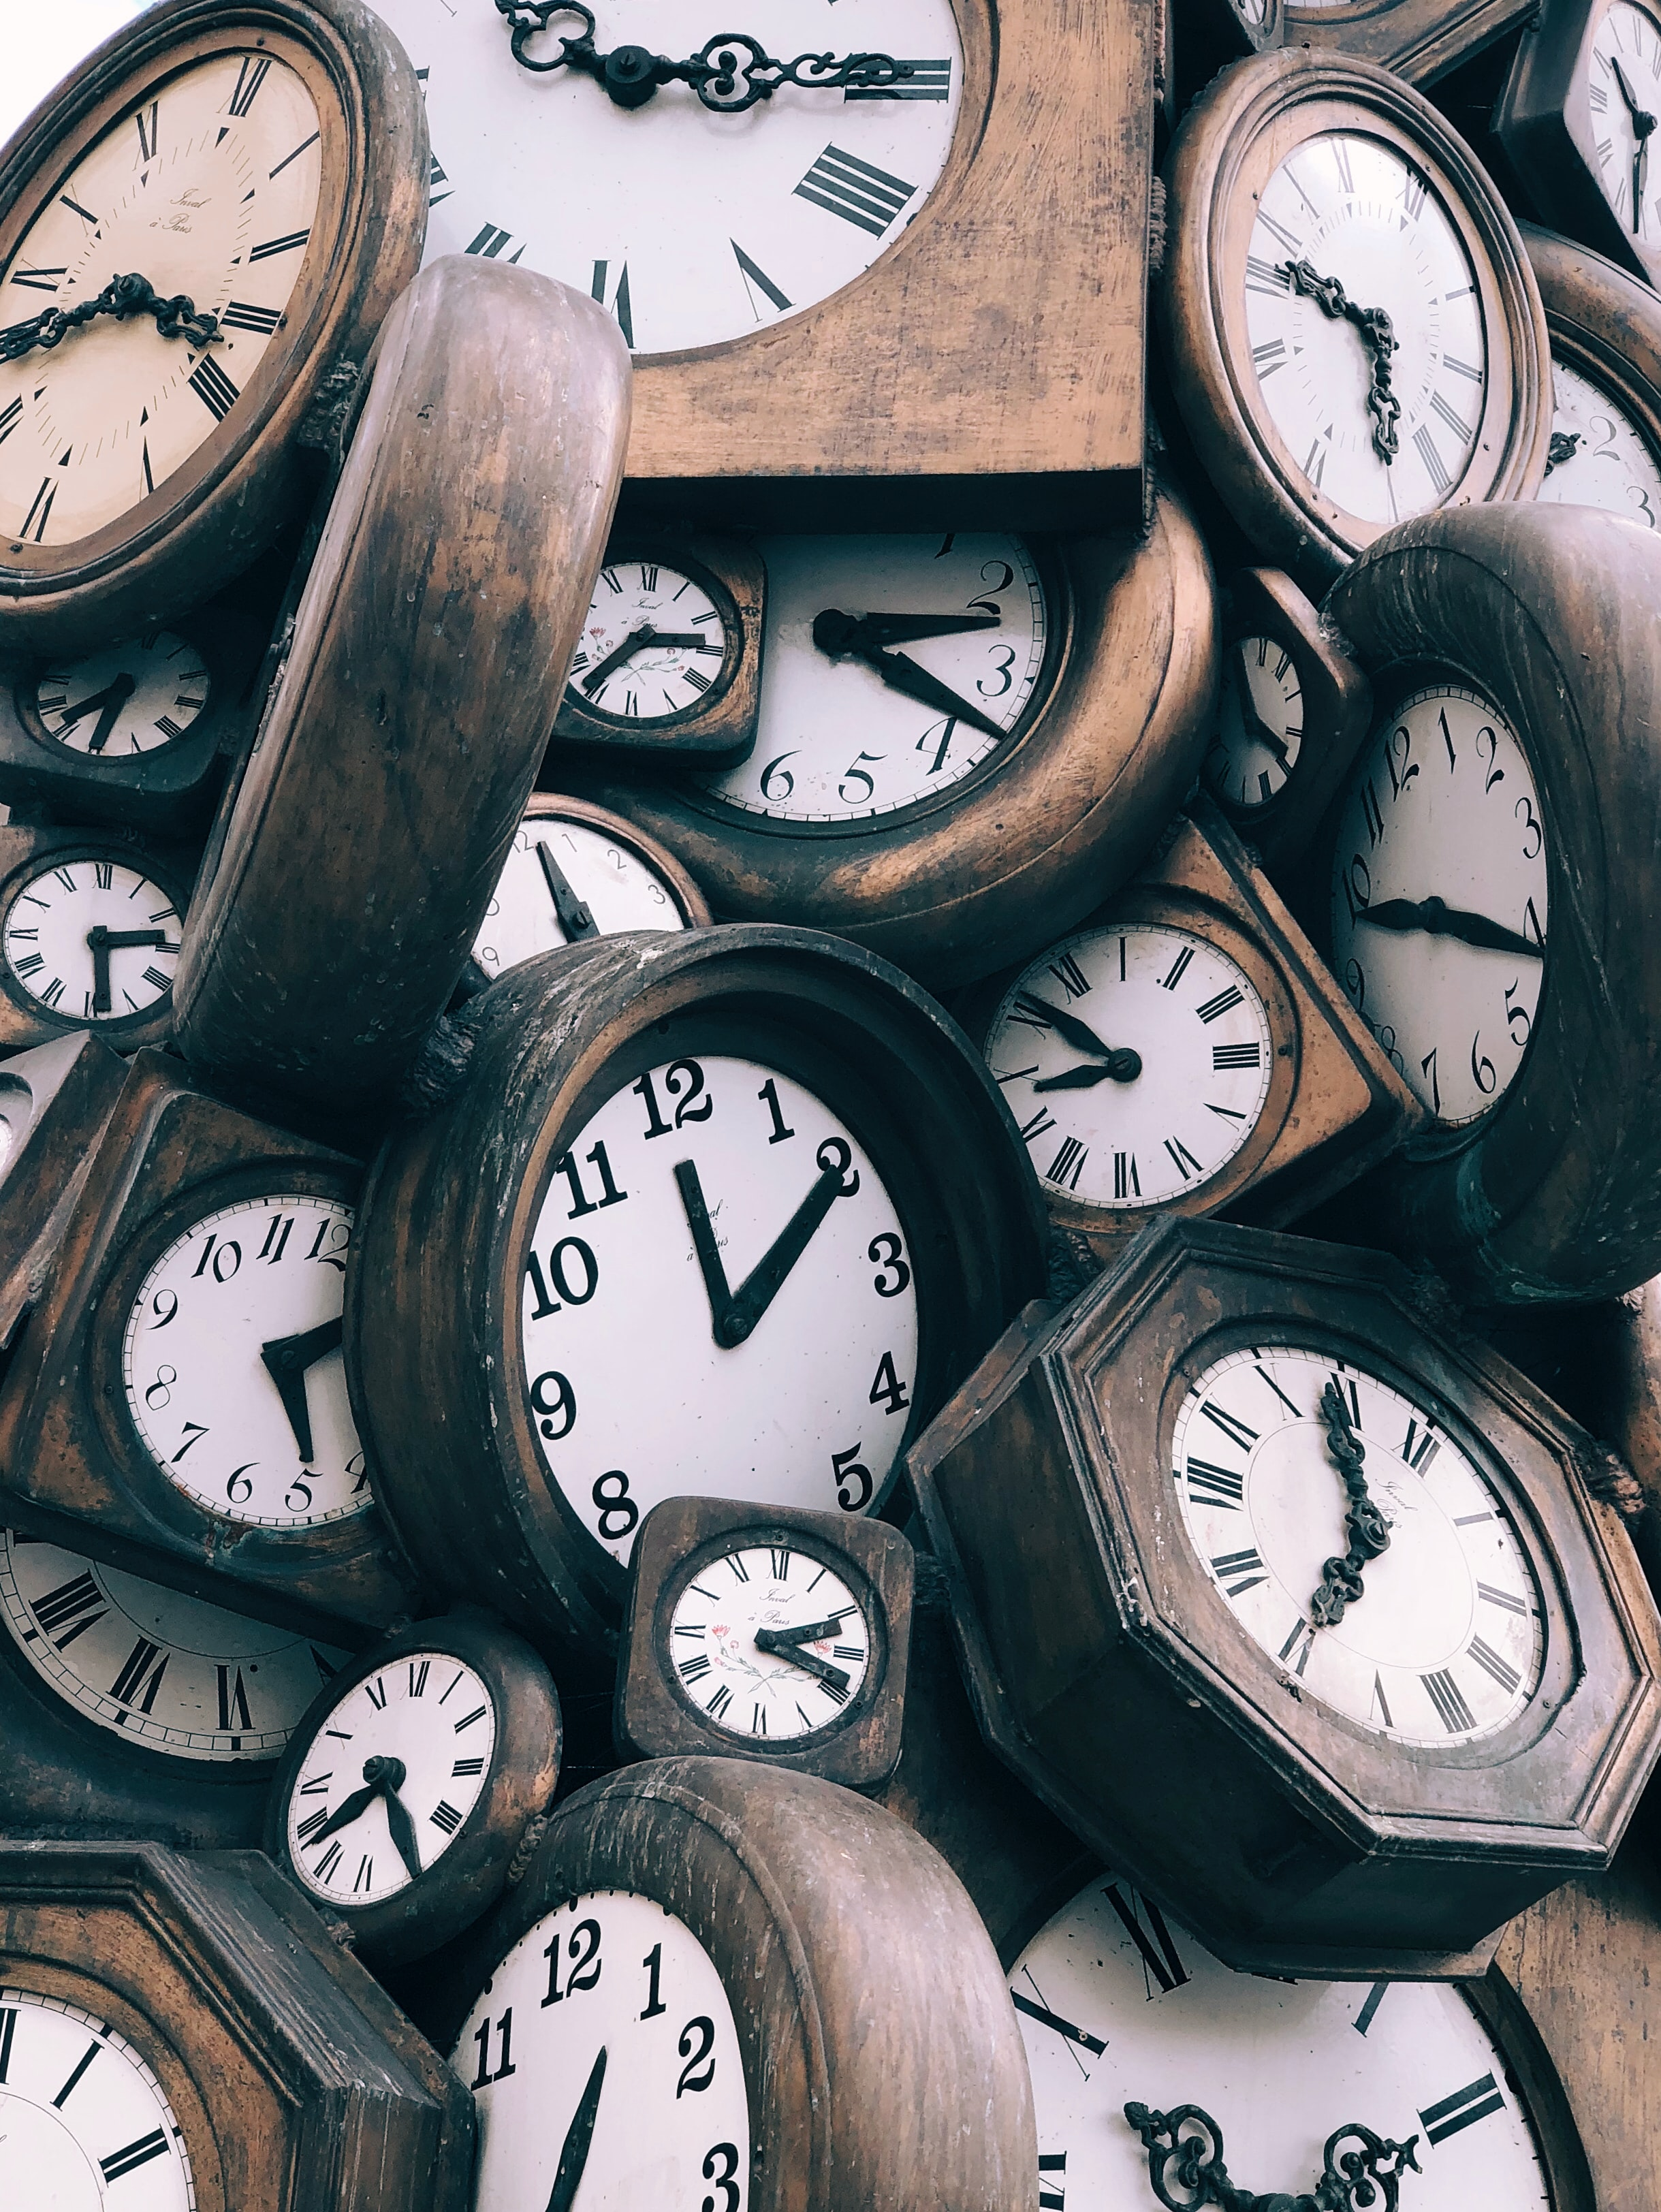 Many vintage clocks. Photo courtesy Jon Tyson via Unsplash.